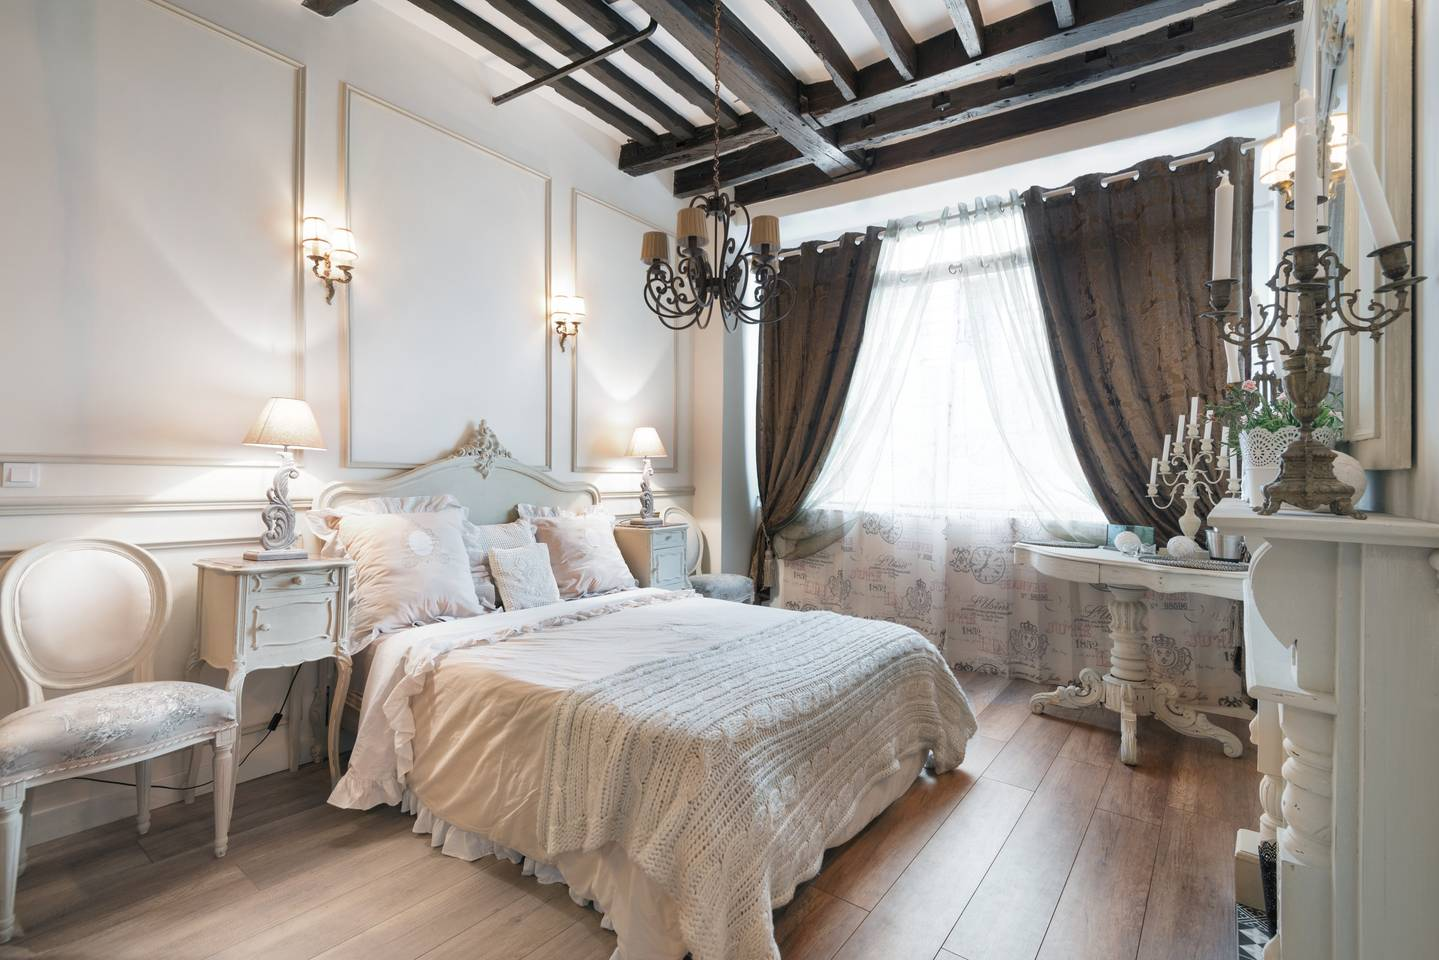 a bedroom with wood beams, perfect for romance